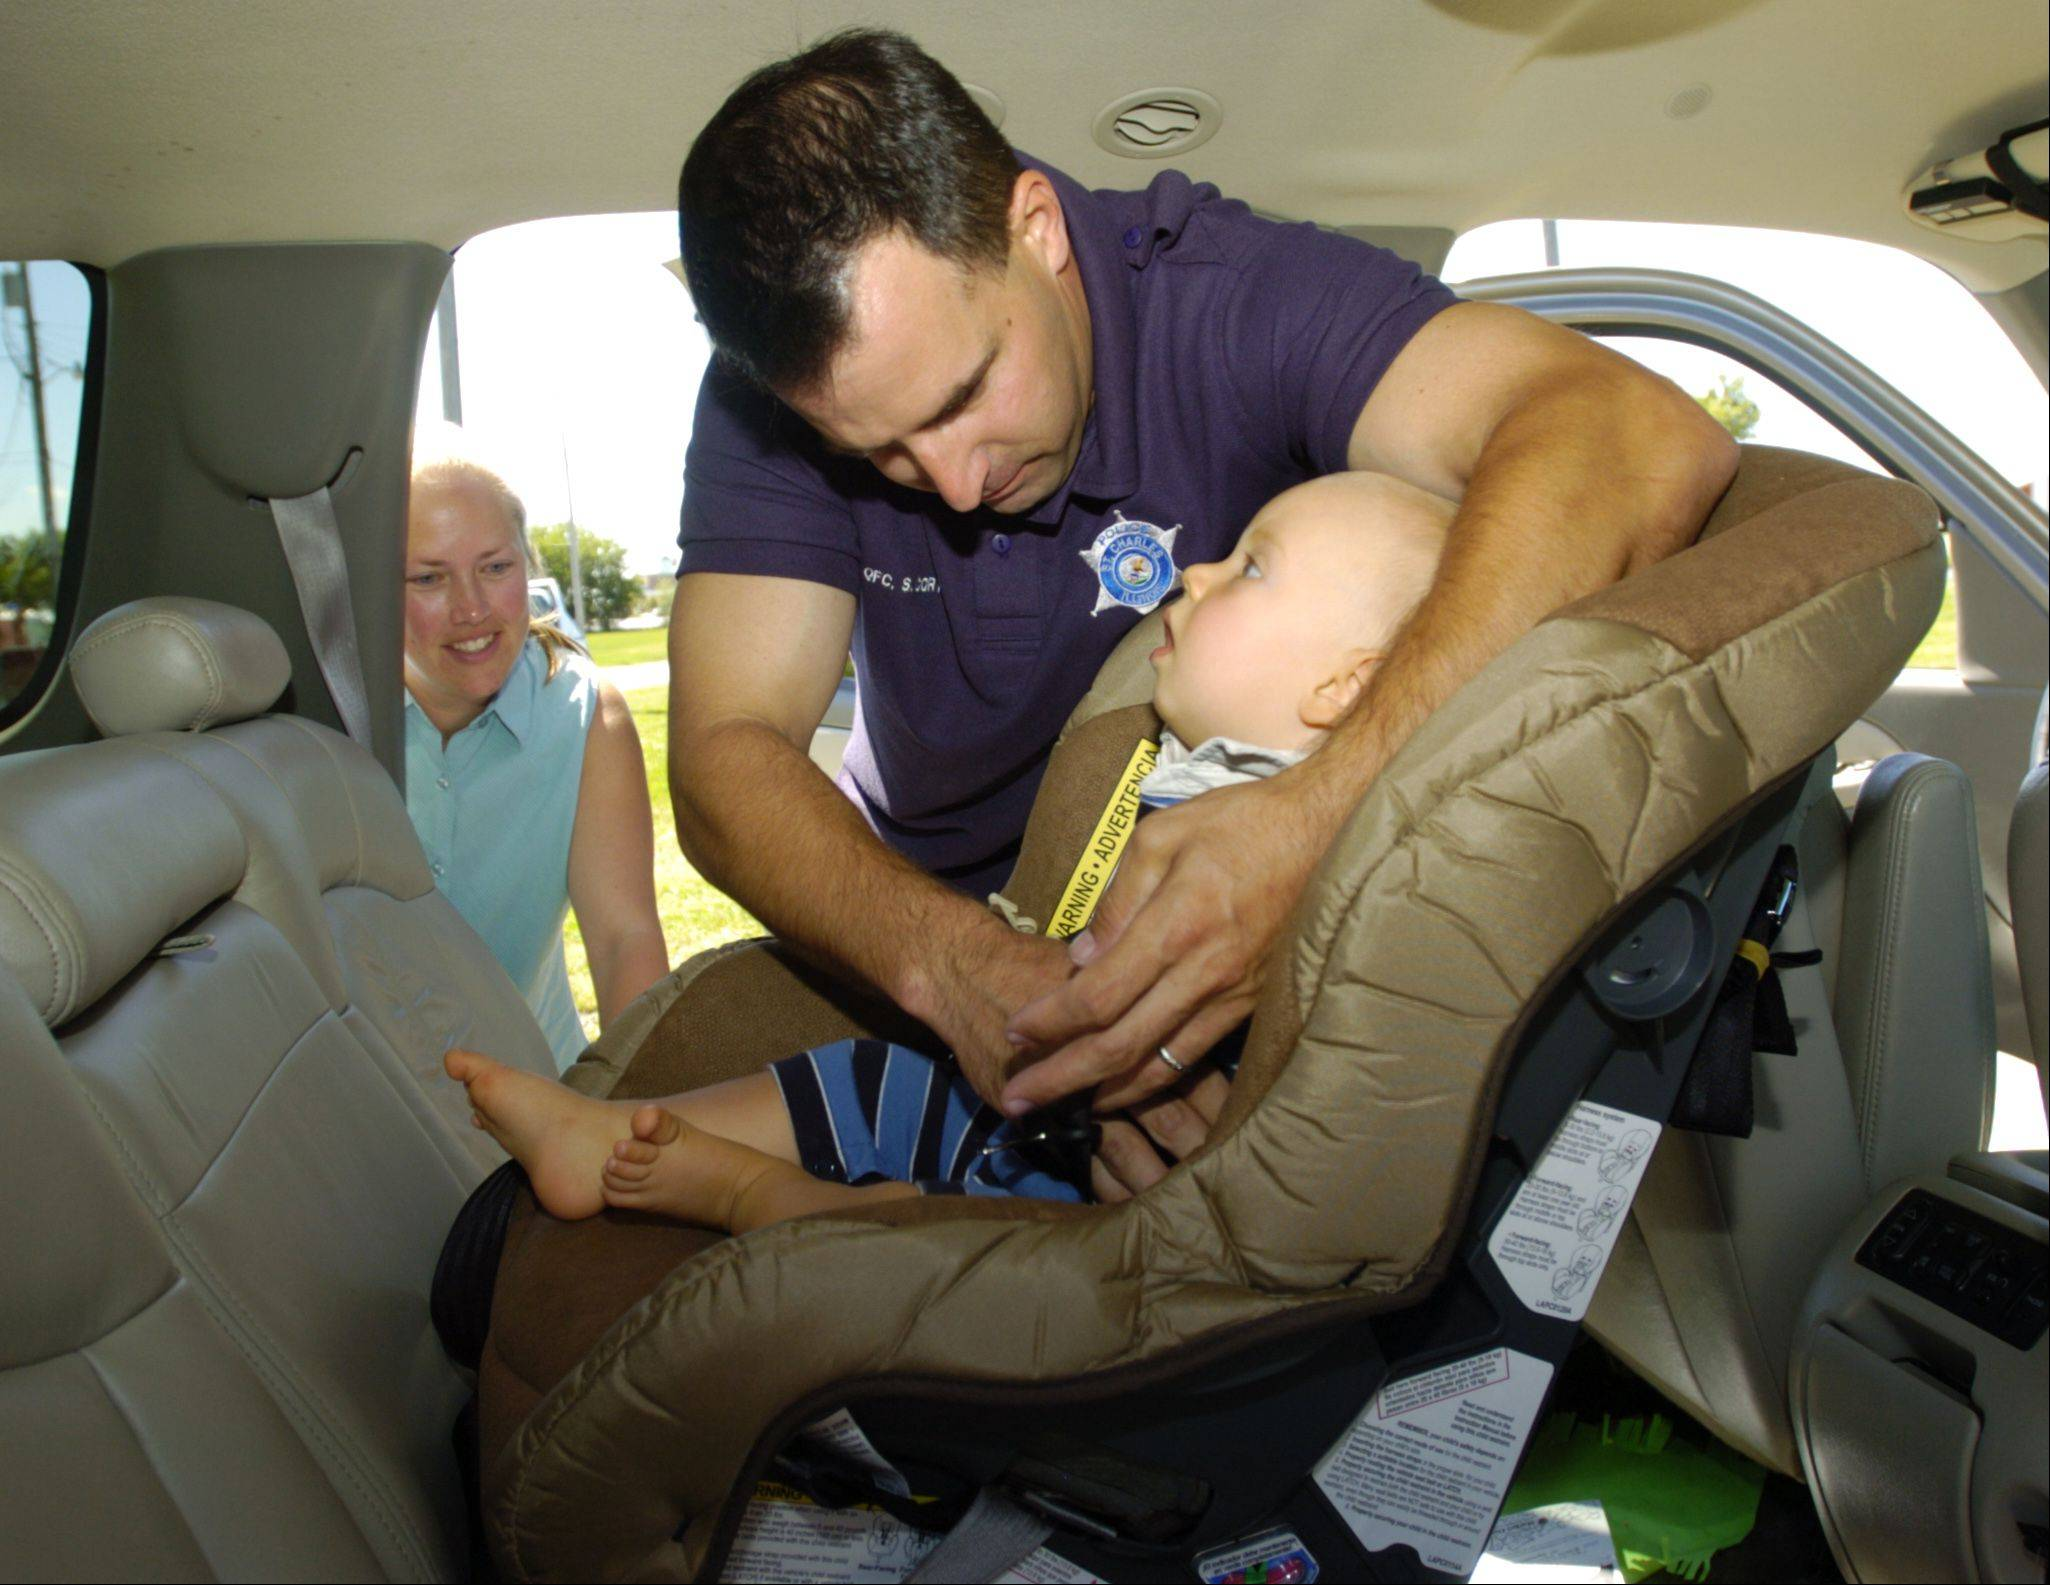 Daily Herald File PhotoHelp is on hand for parents and caregivers daunted by complicated child safety seats.